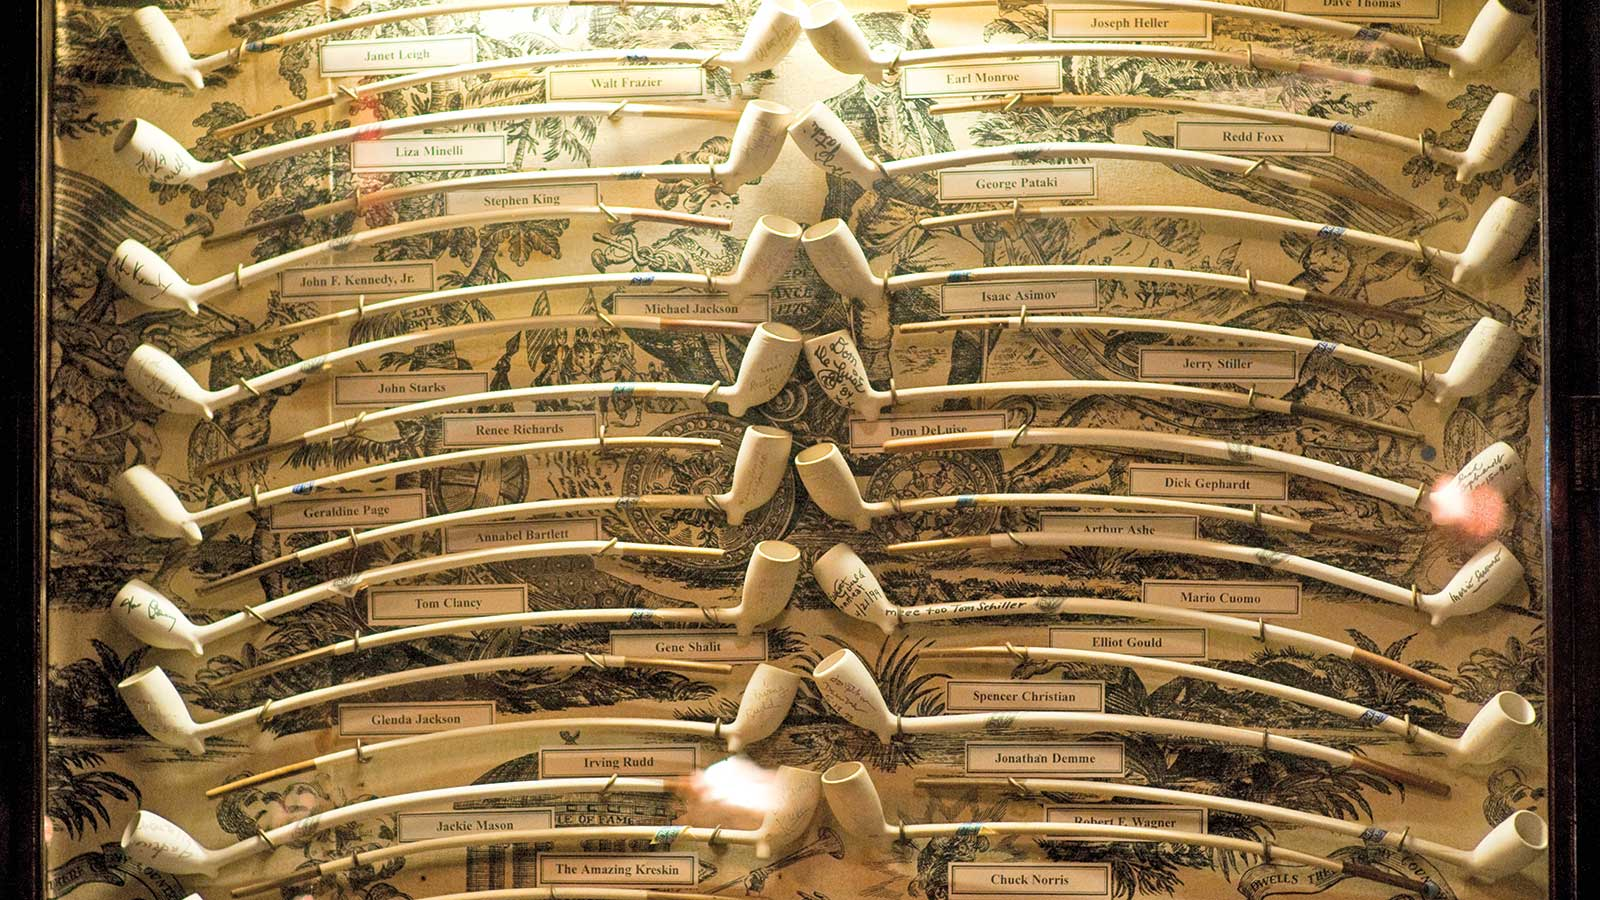 Keens, a New York City institution, is decorated with more than 45,000 clay pipes accumulated over the landmark's 13-decade run. They adorn the walls and nearly every inch of the ceiling.